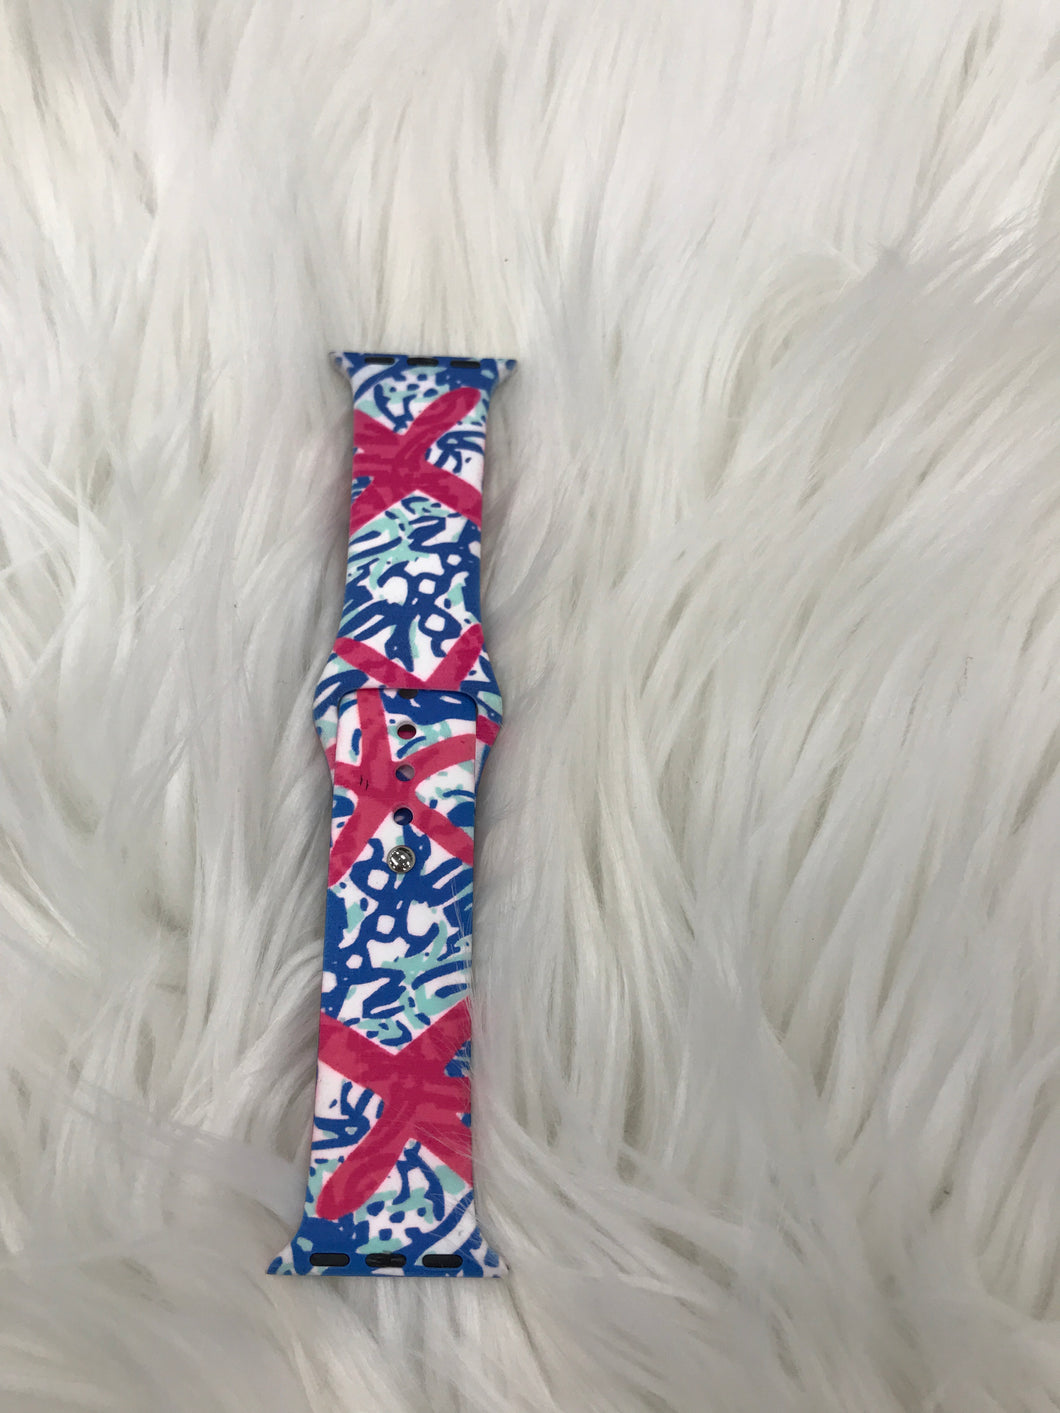 Lily Pulitzer inspired Apple watch band